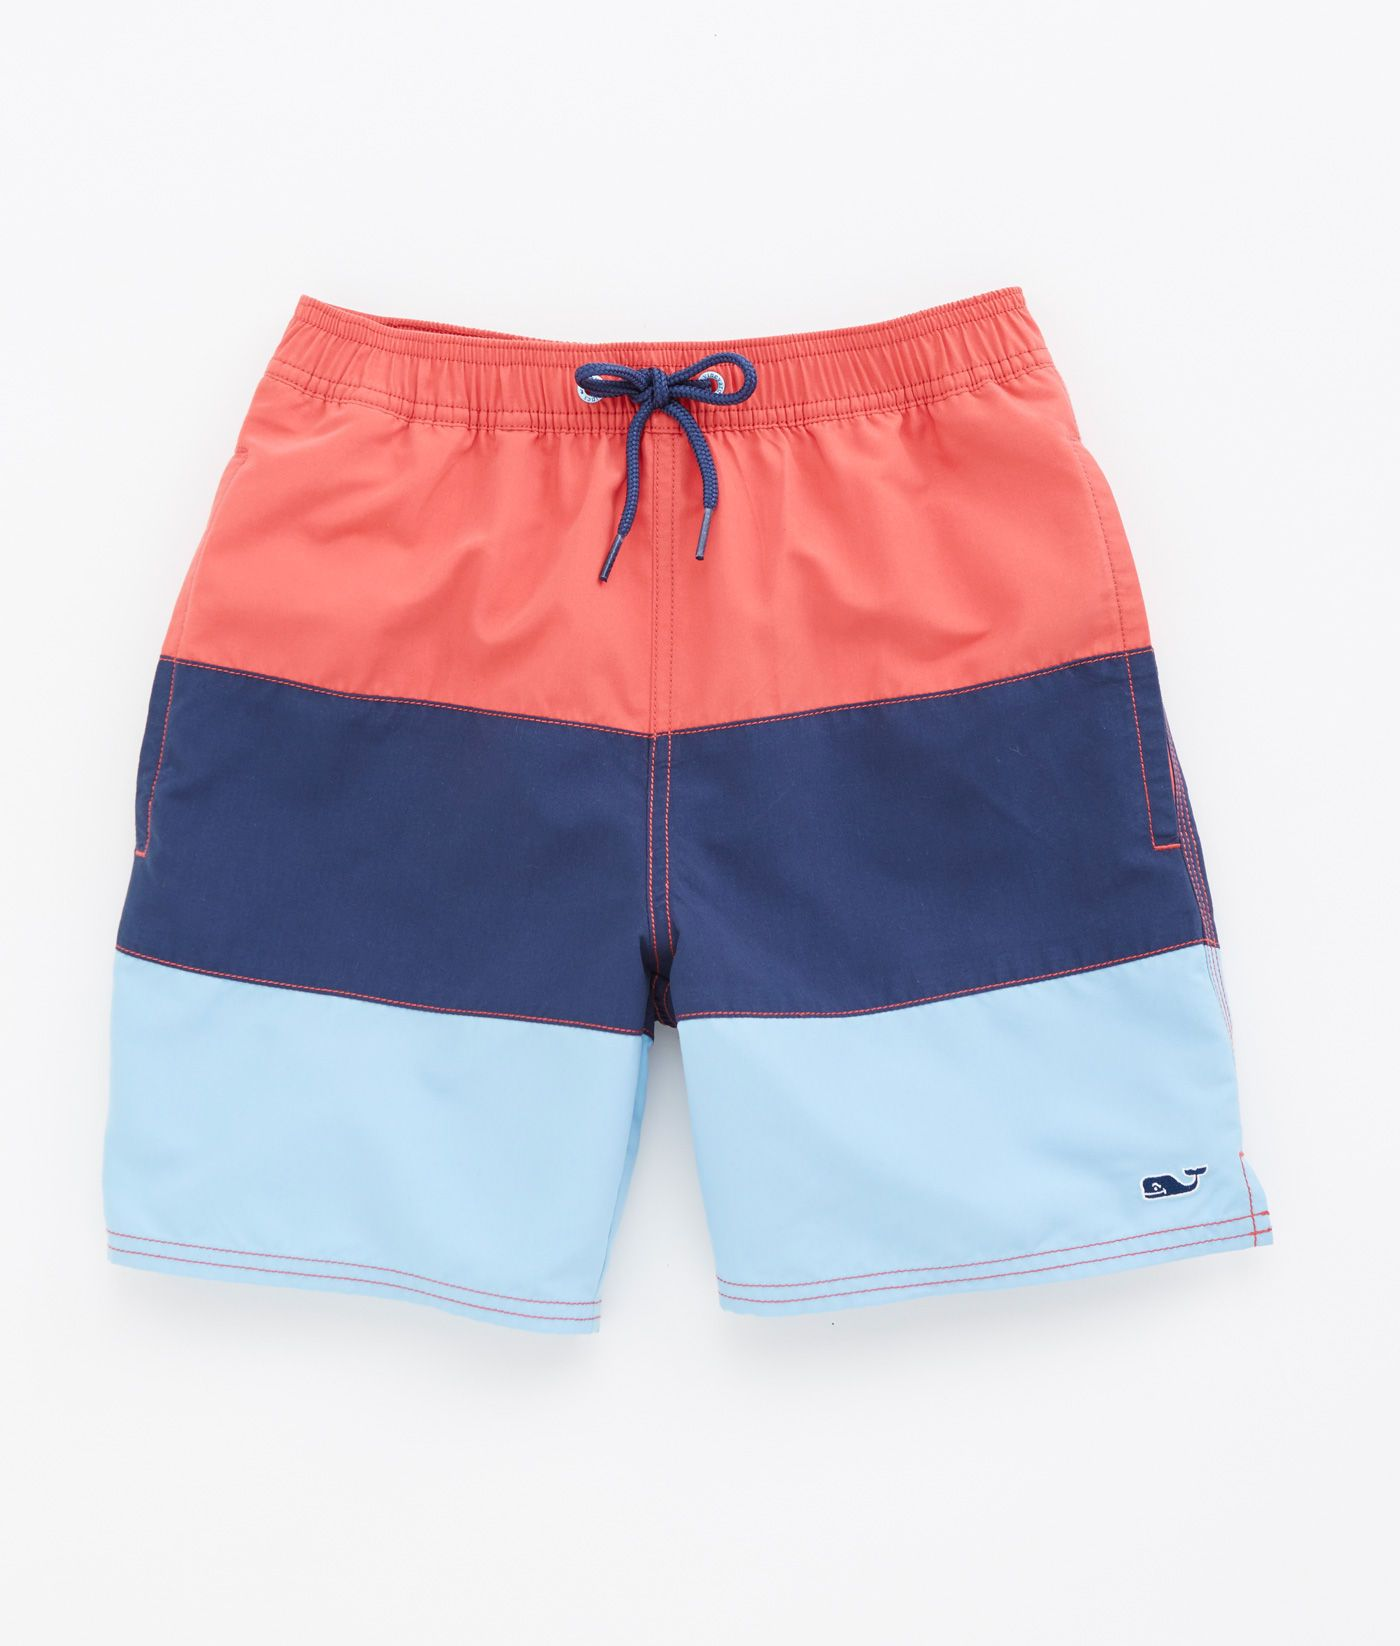 63e9a56c04 Swimsuit for Lance from VV. Boys Swim: Pieced Bungalow Shorts for Boys | Vineyard  Vines